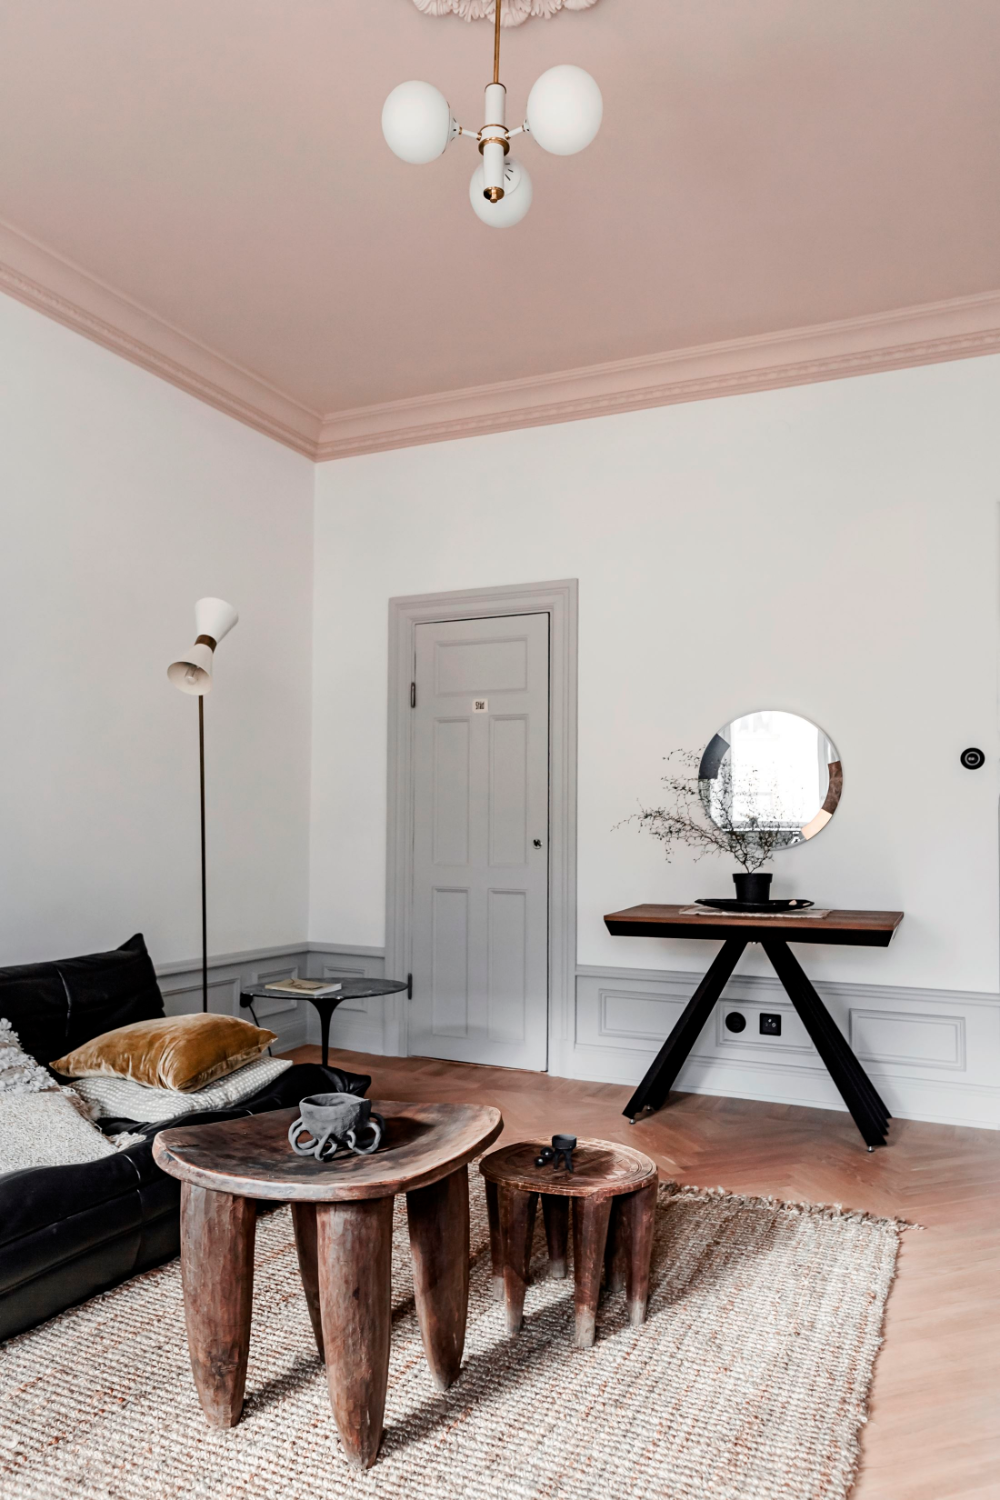 Creative ways to use paint around your home   Pink painted ceiling   Seasons in Colour Interiors Blog